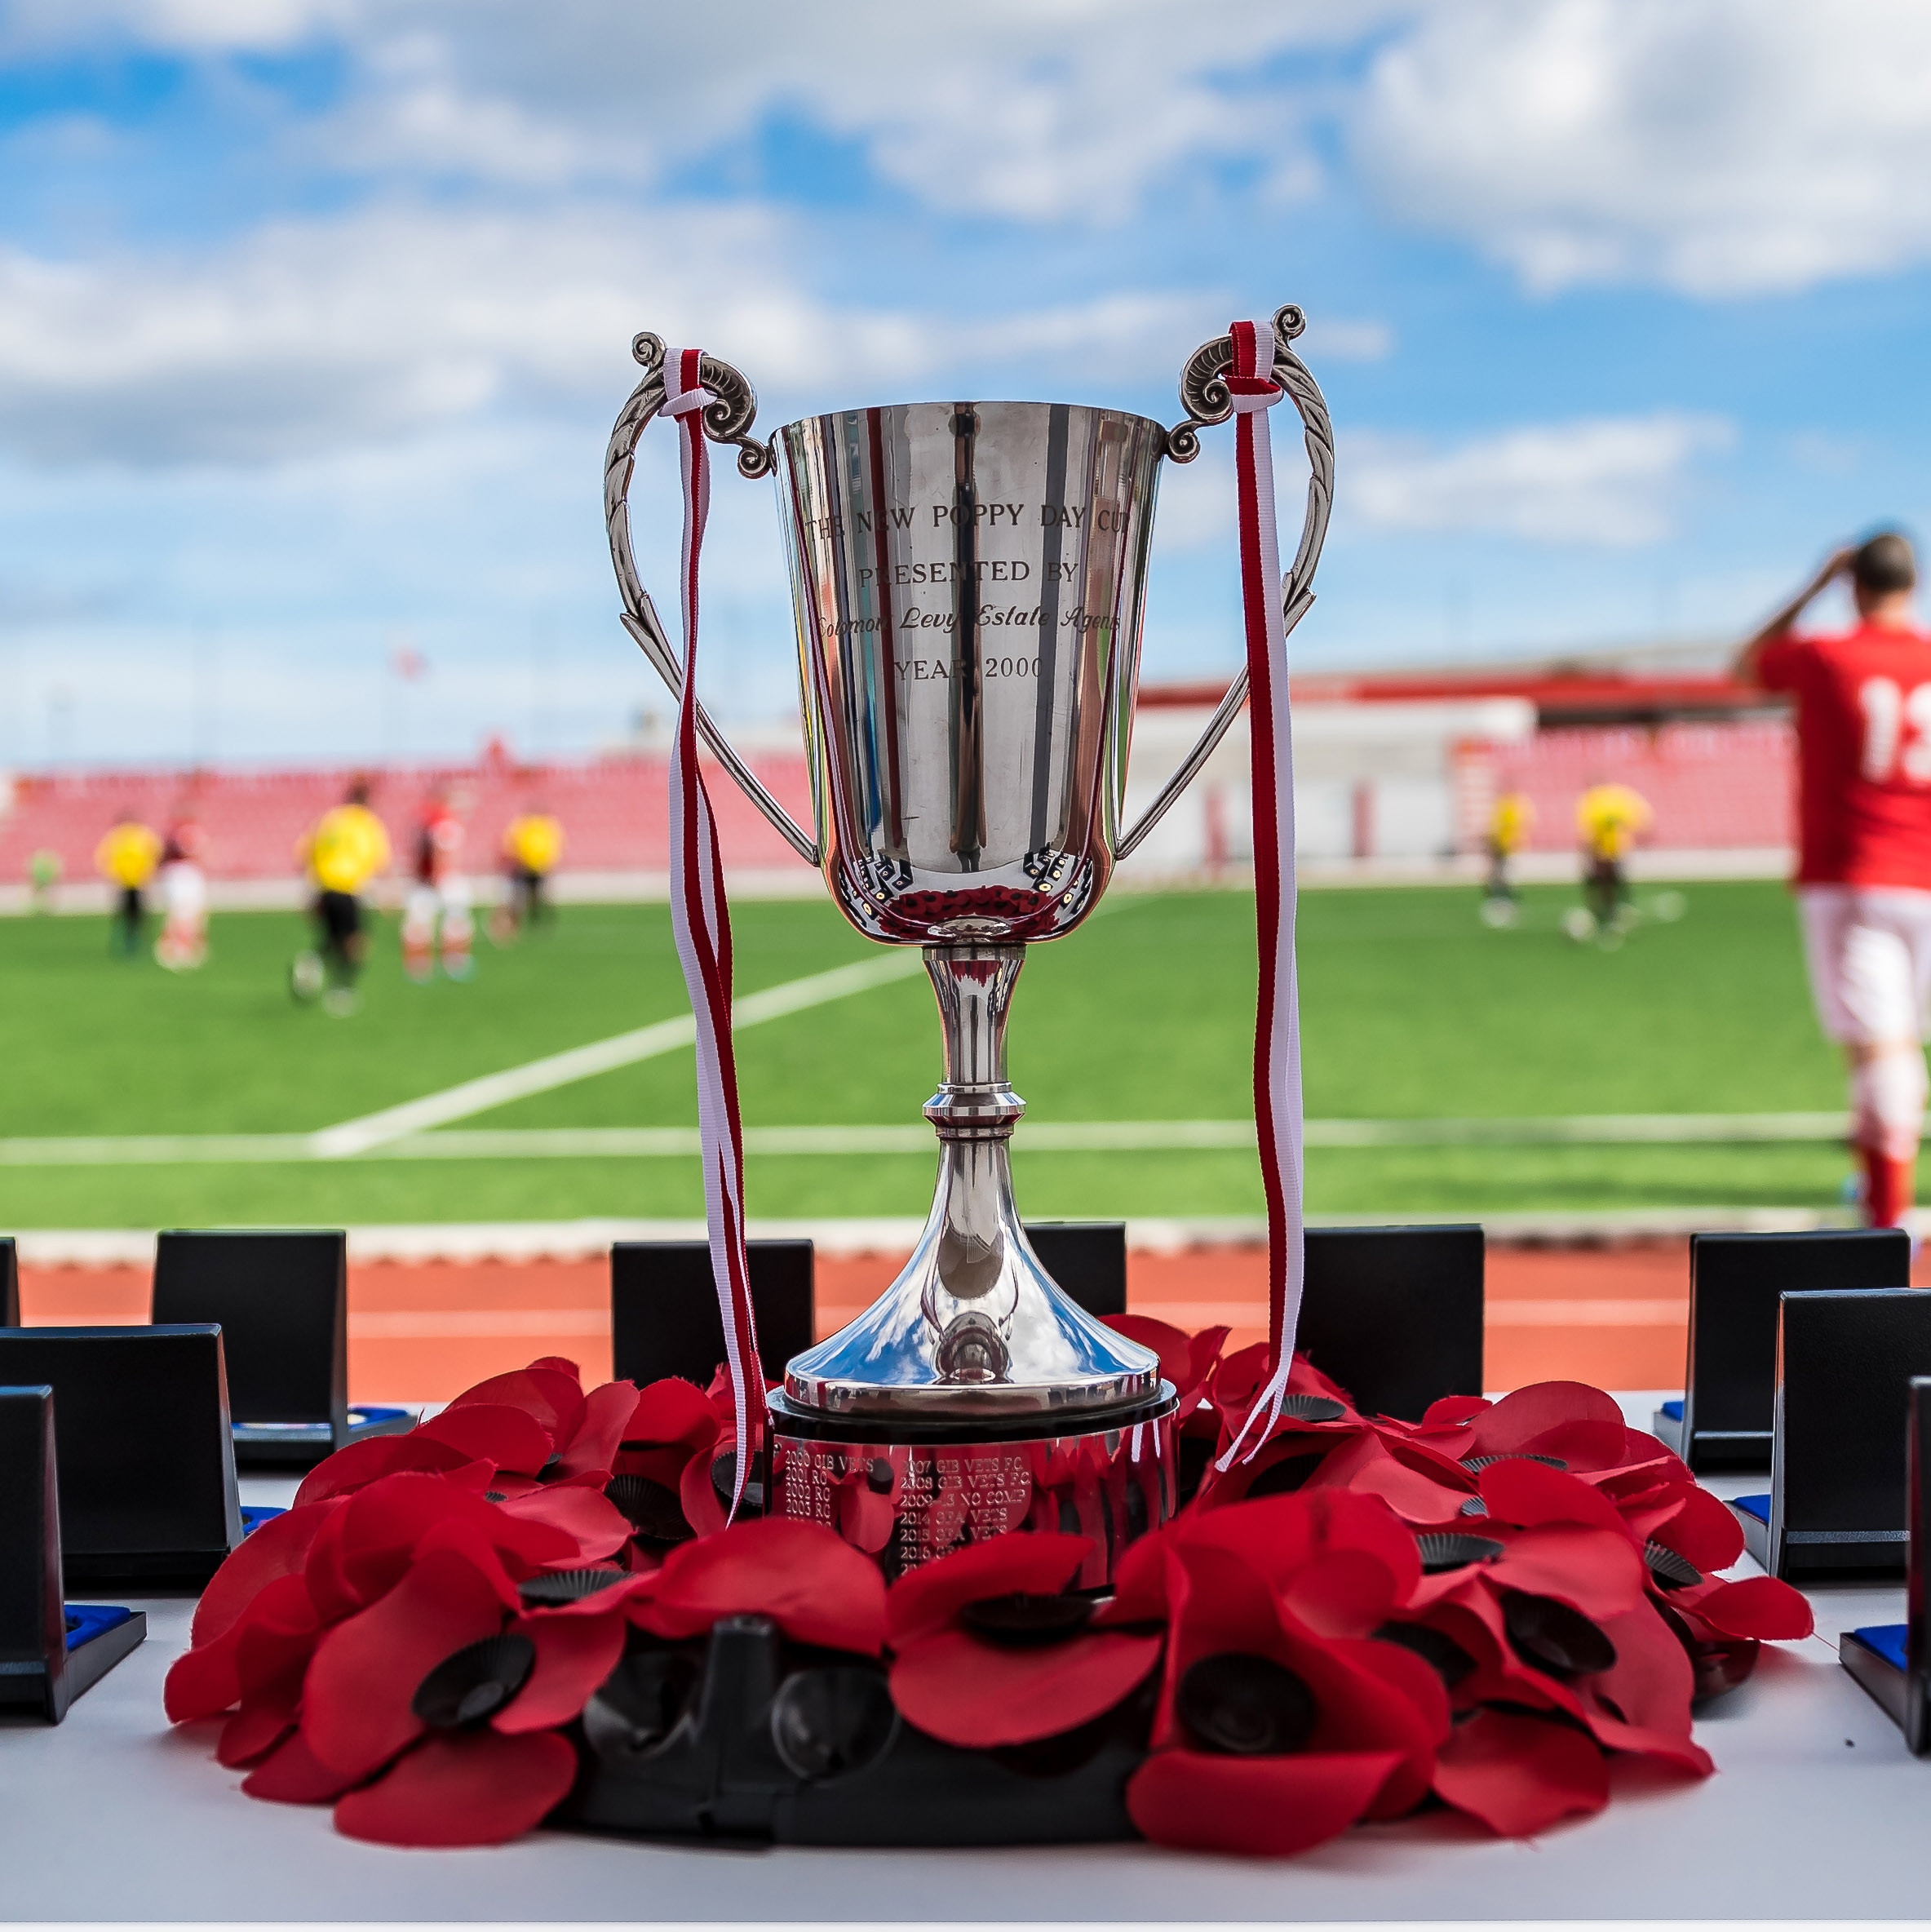 Poppy Day Cup 2018 - Trophy